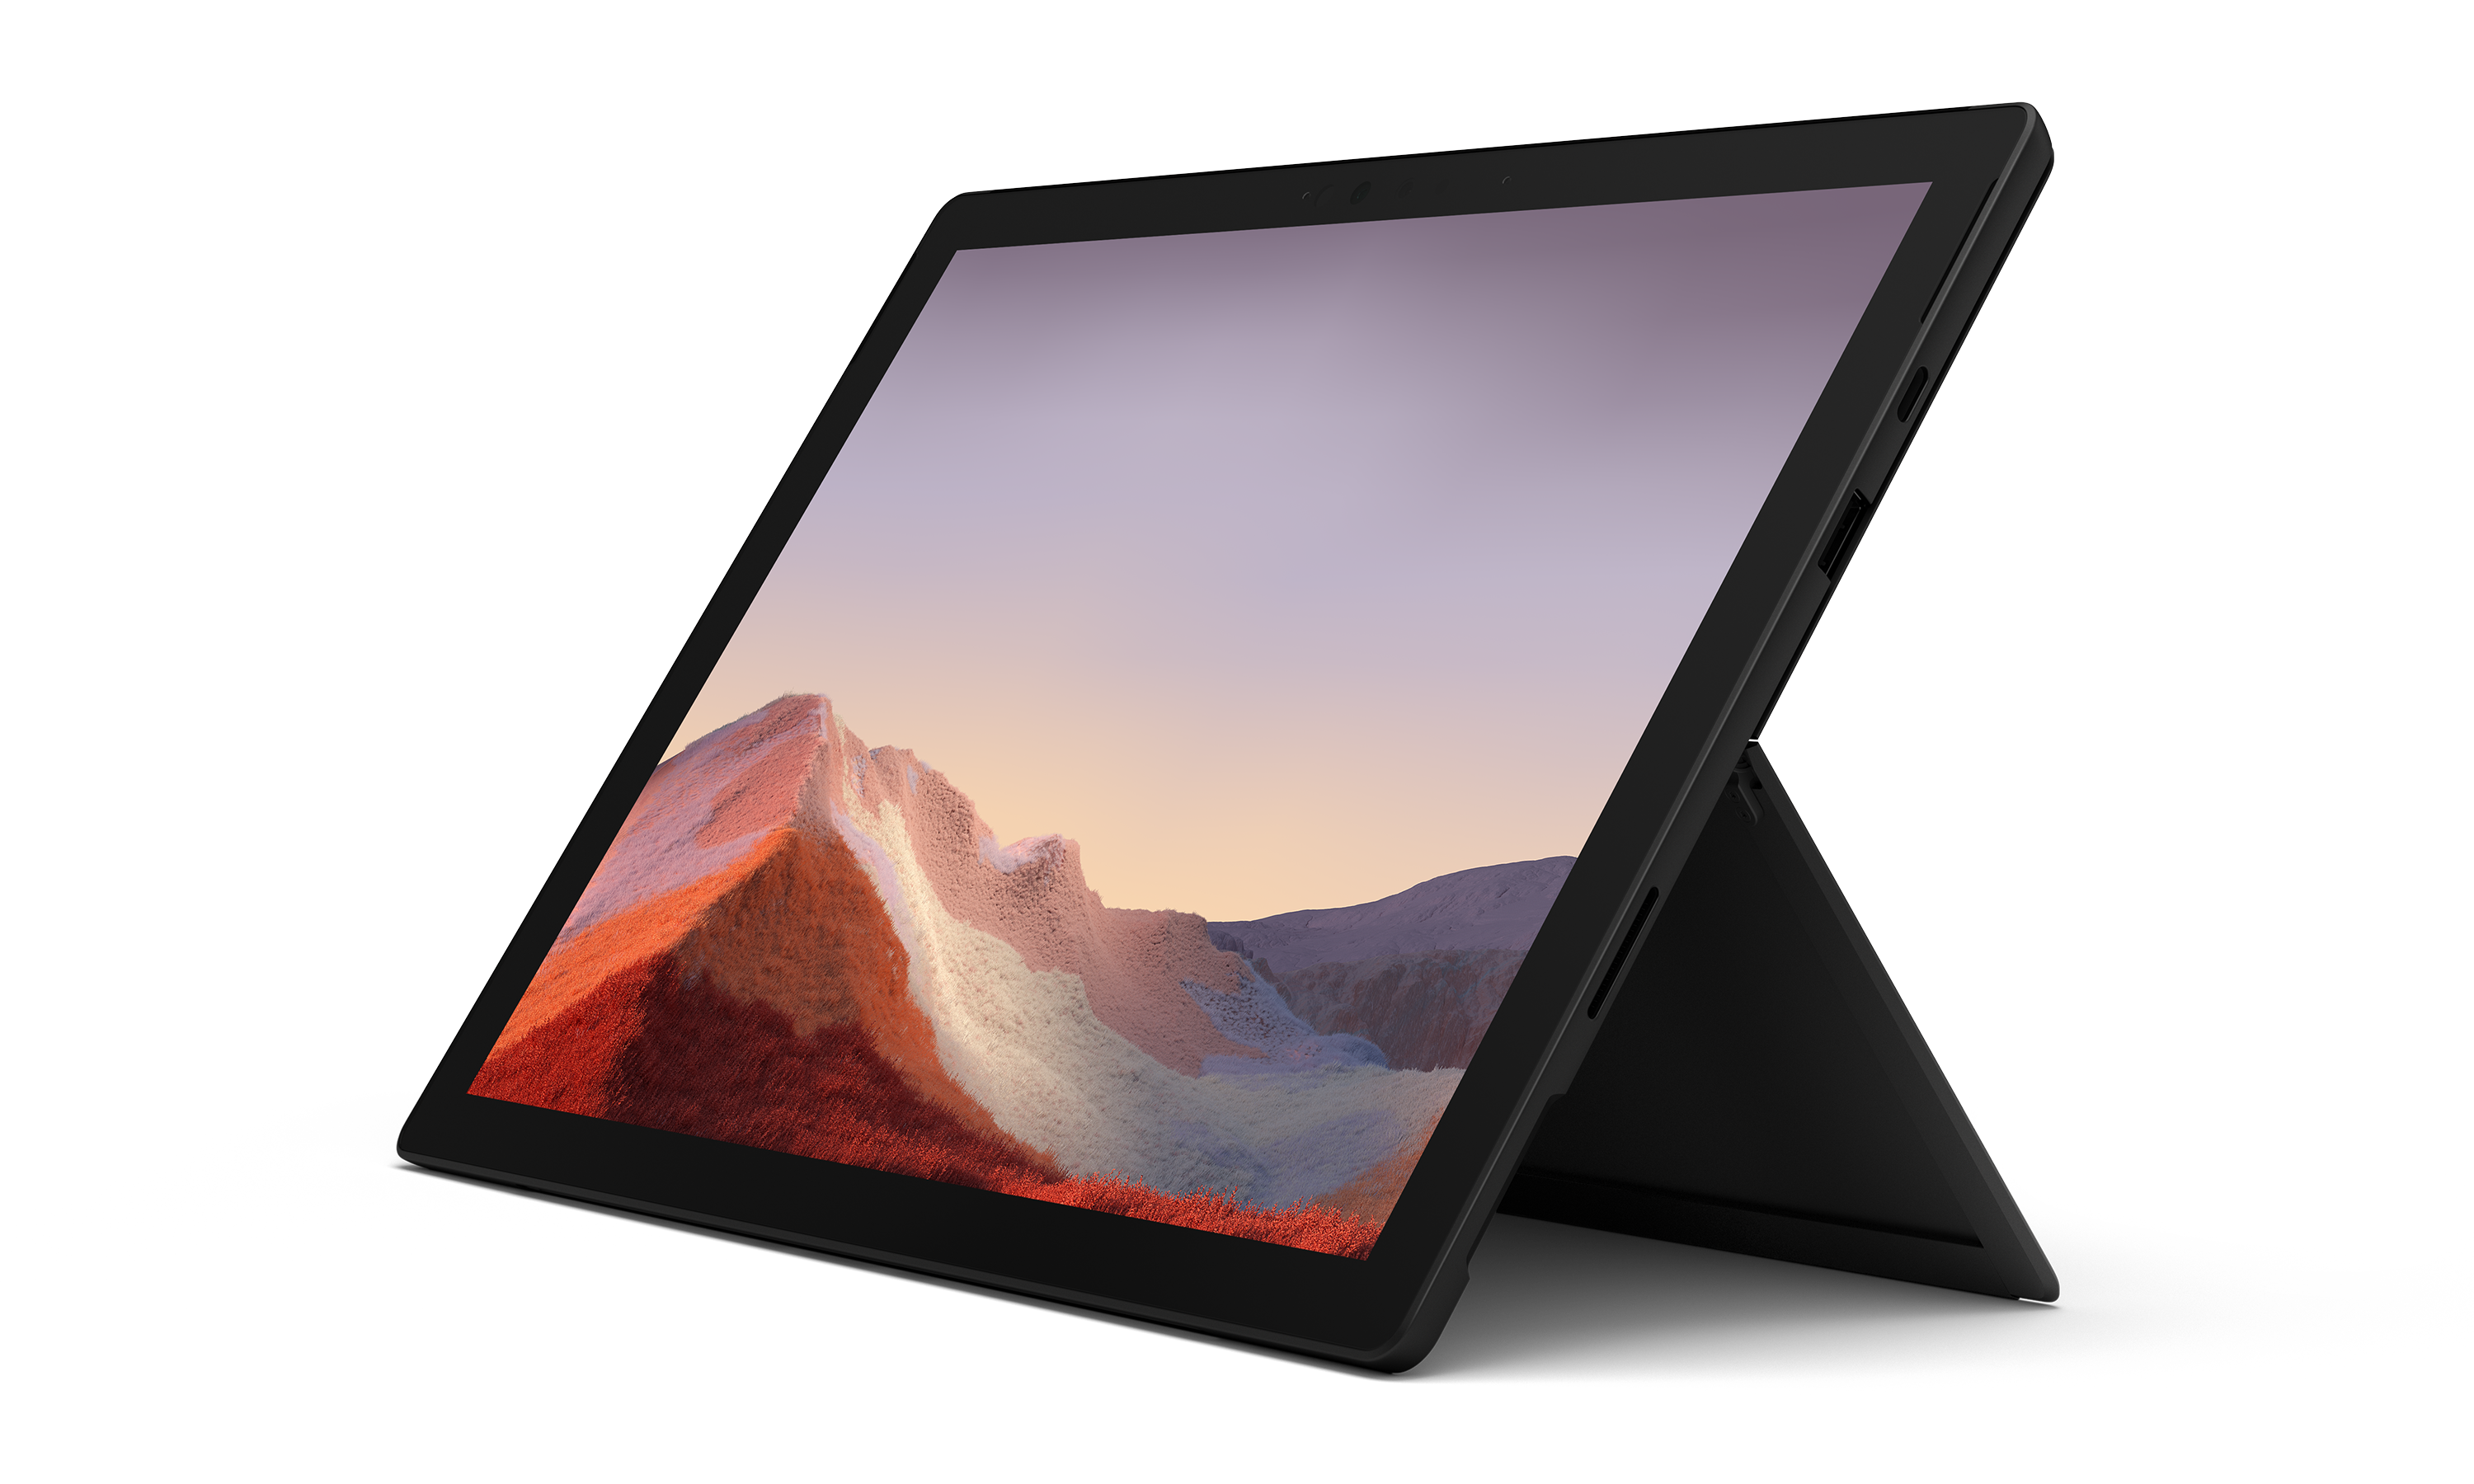 Surface Pro 7 - Black, Intel Core i7, 16GB, 256GB Ultra-light and versatile. At your desk, on the sofa, or in the garden, get more done your way with Surface Pro 7, featuring a laptop-class Intel® Core™ processor, all-day battery¹ and HD cameras.